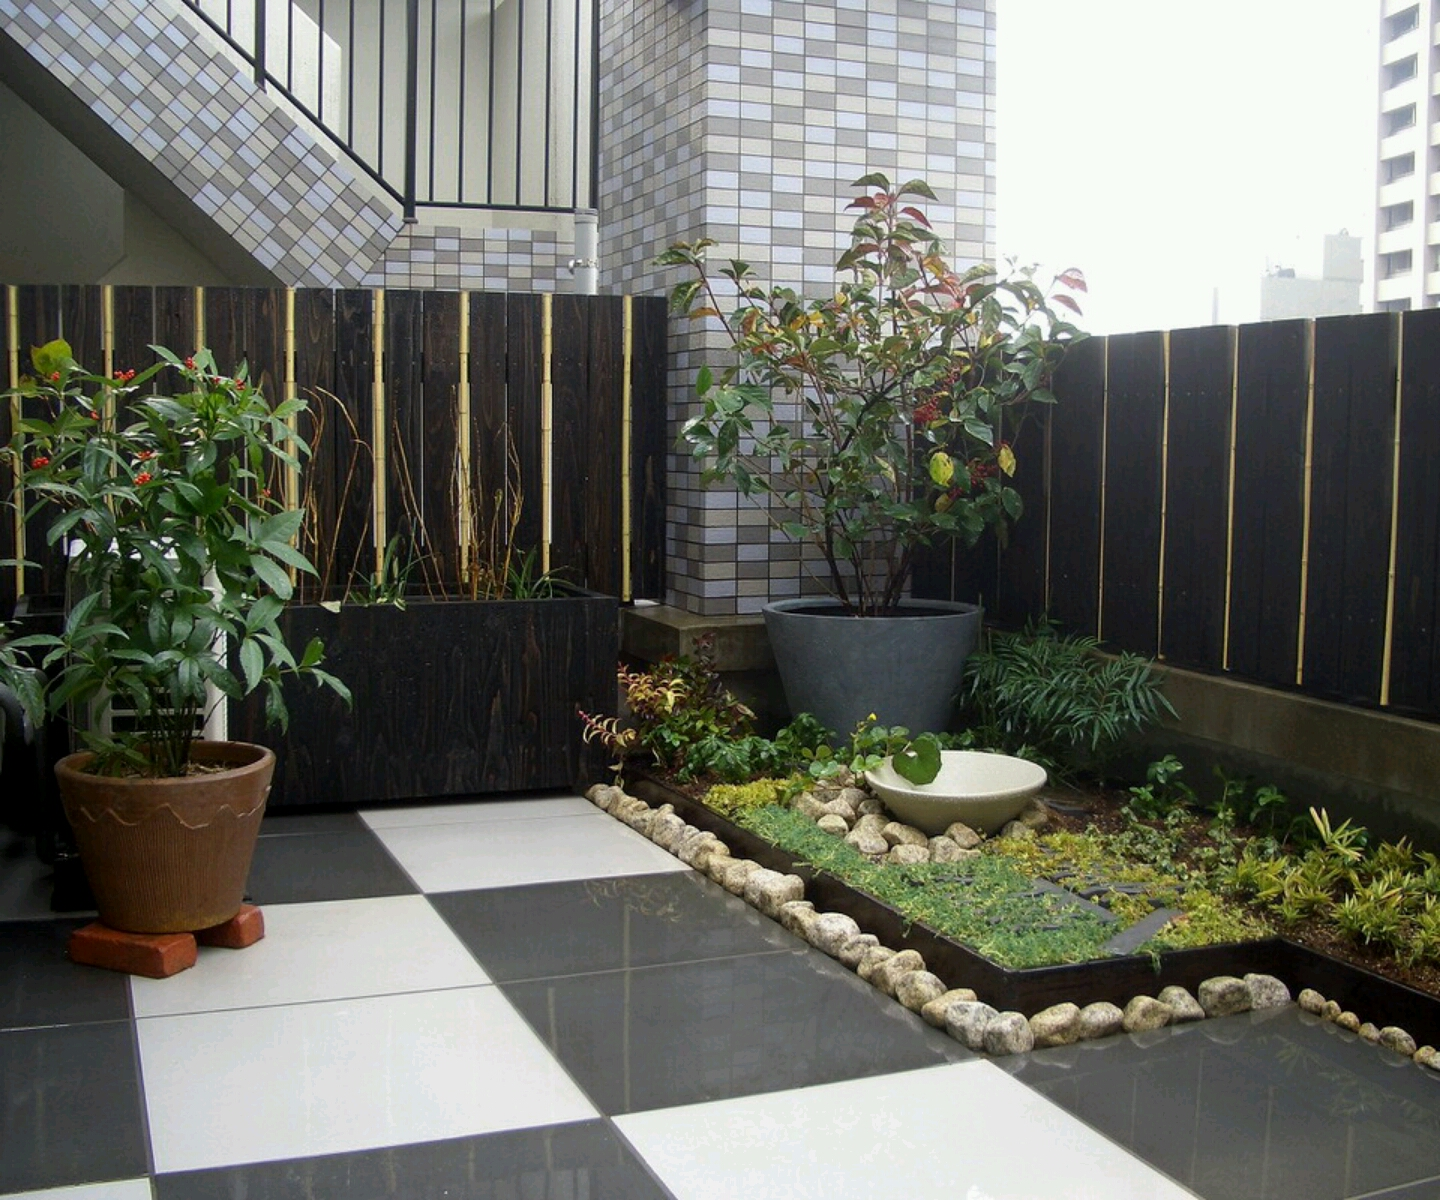 Ultra modern garden design inspiration interior designs for Latest garden design